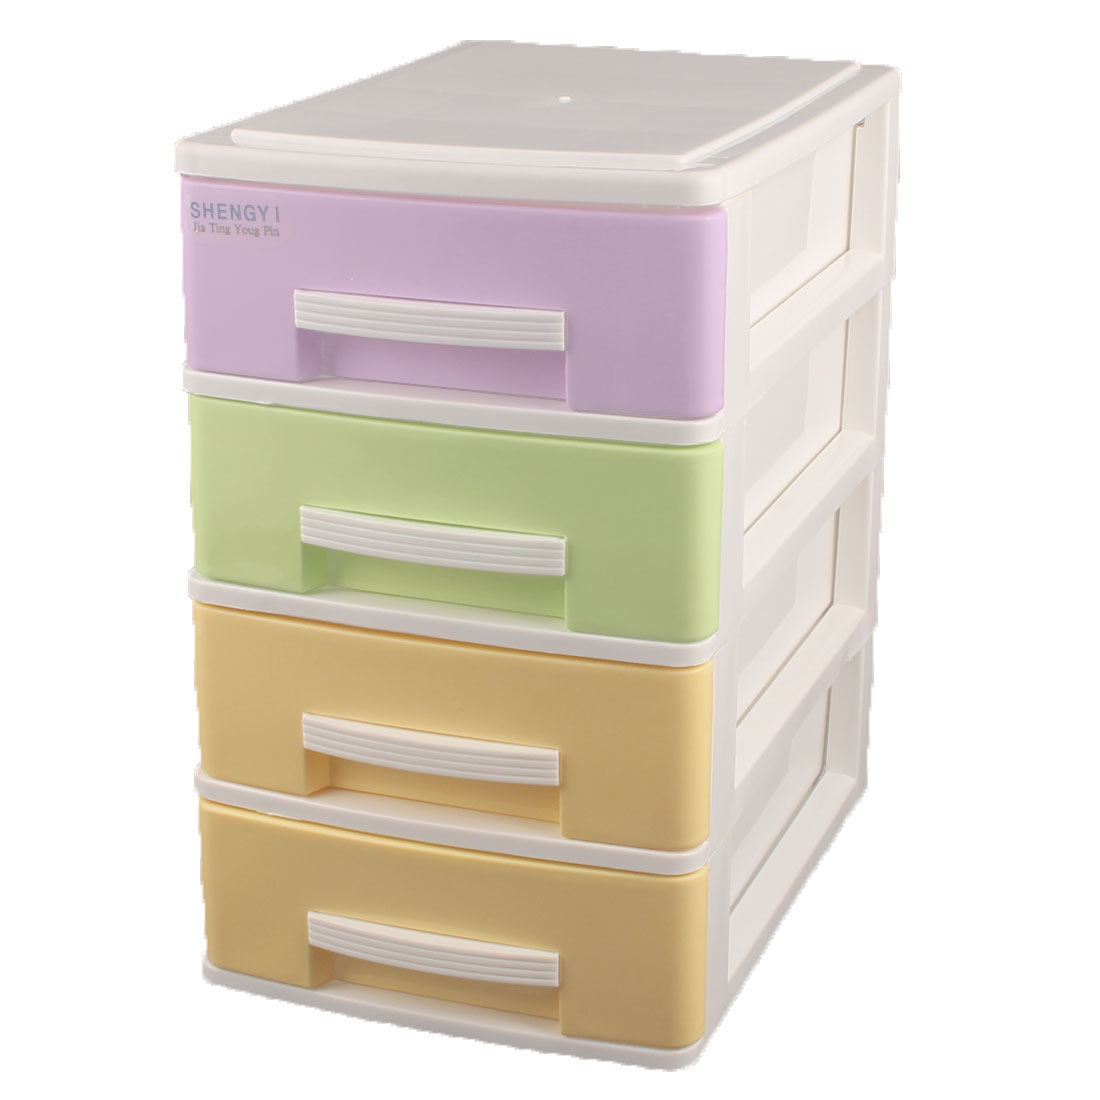 Household Bedroom Four Layers Design Storage Box Container Cabinet Colorful